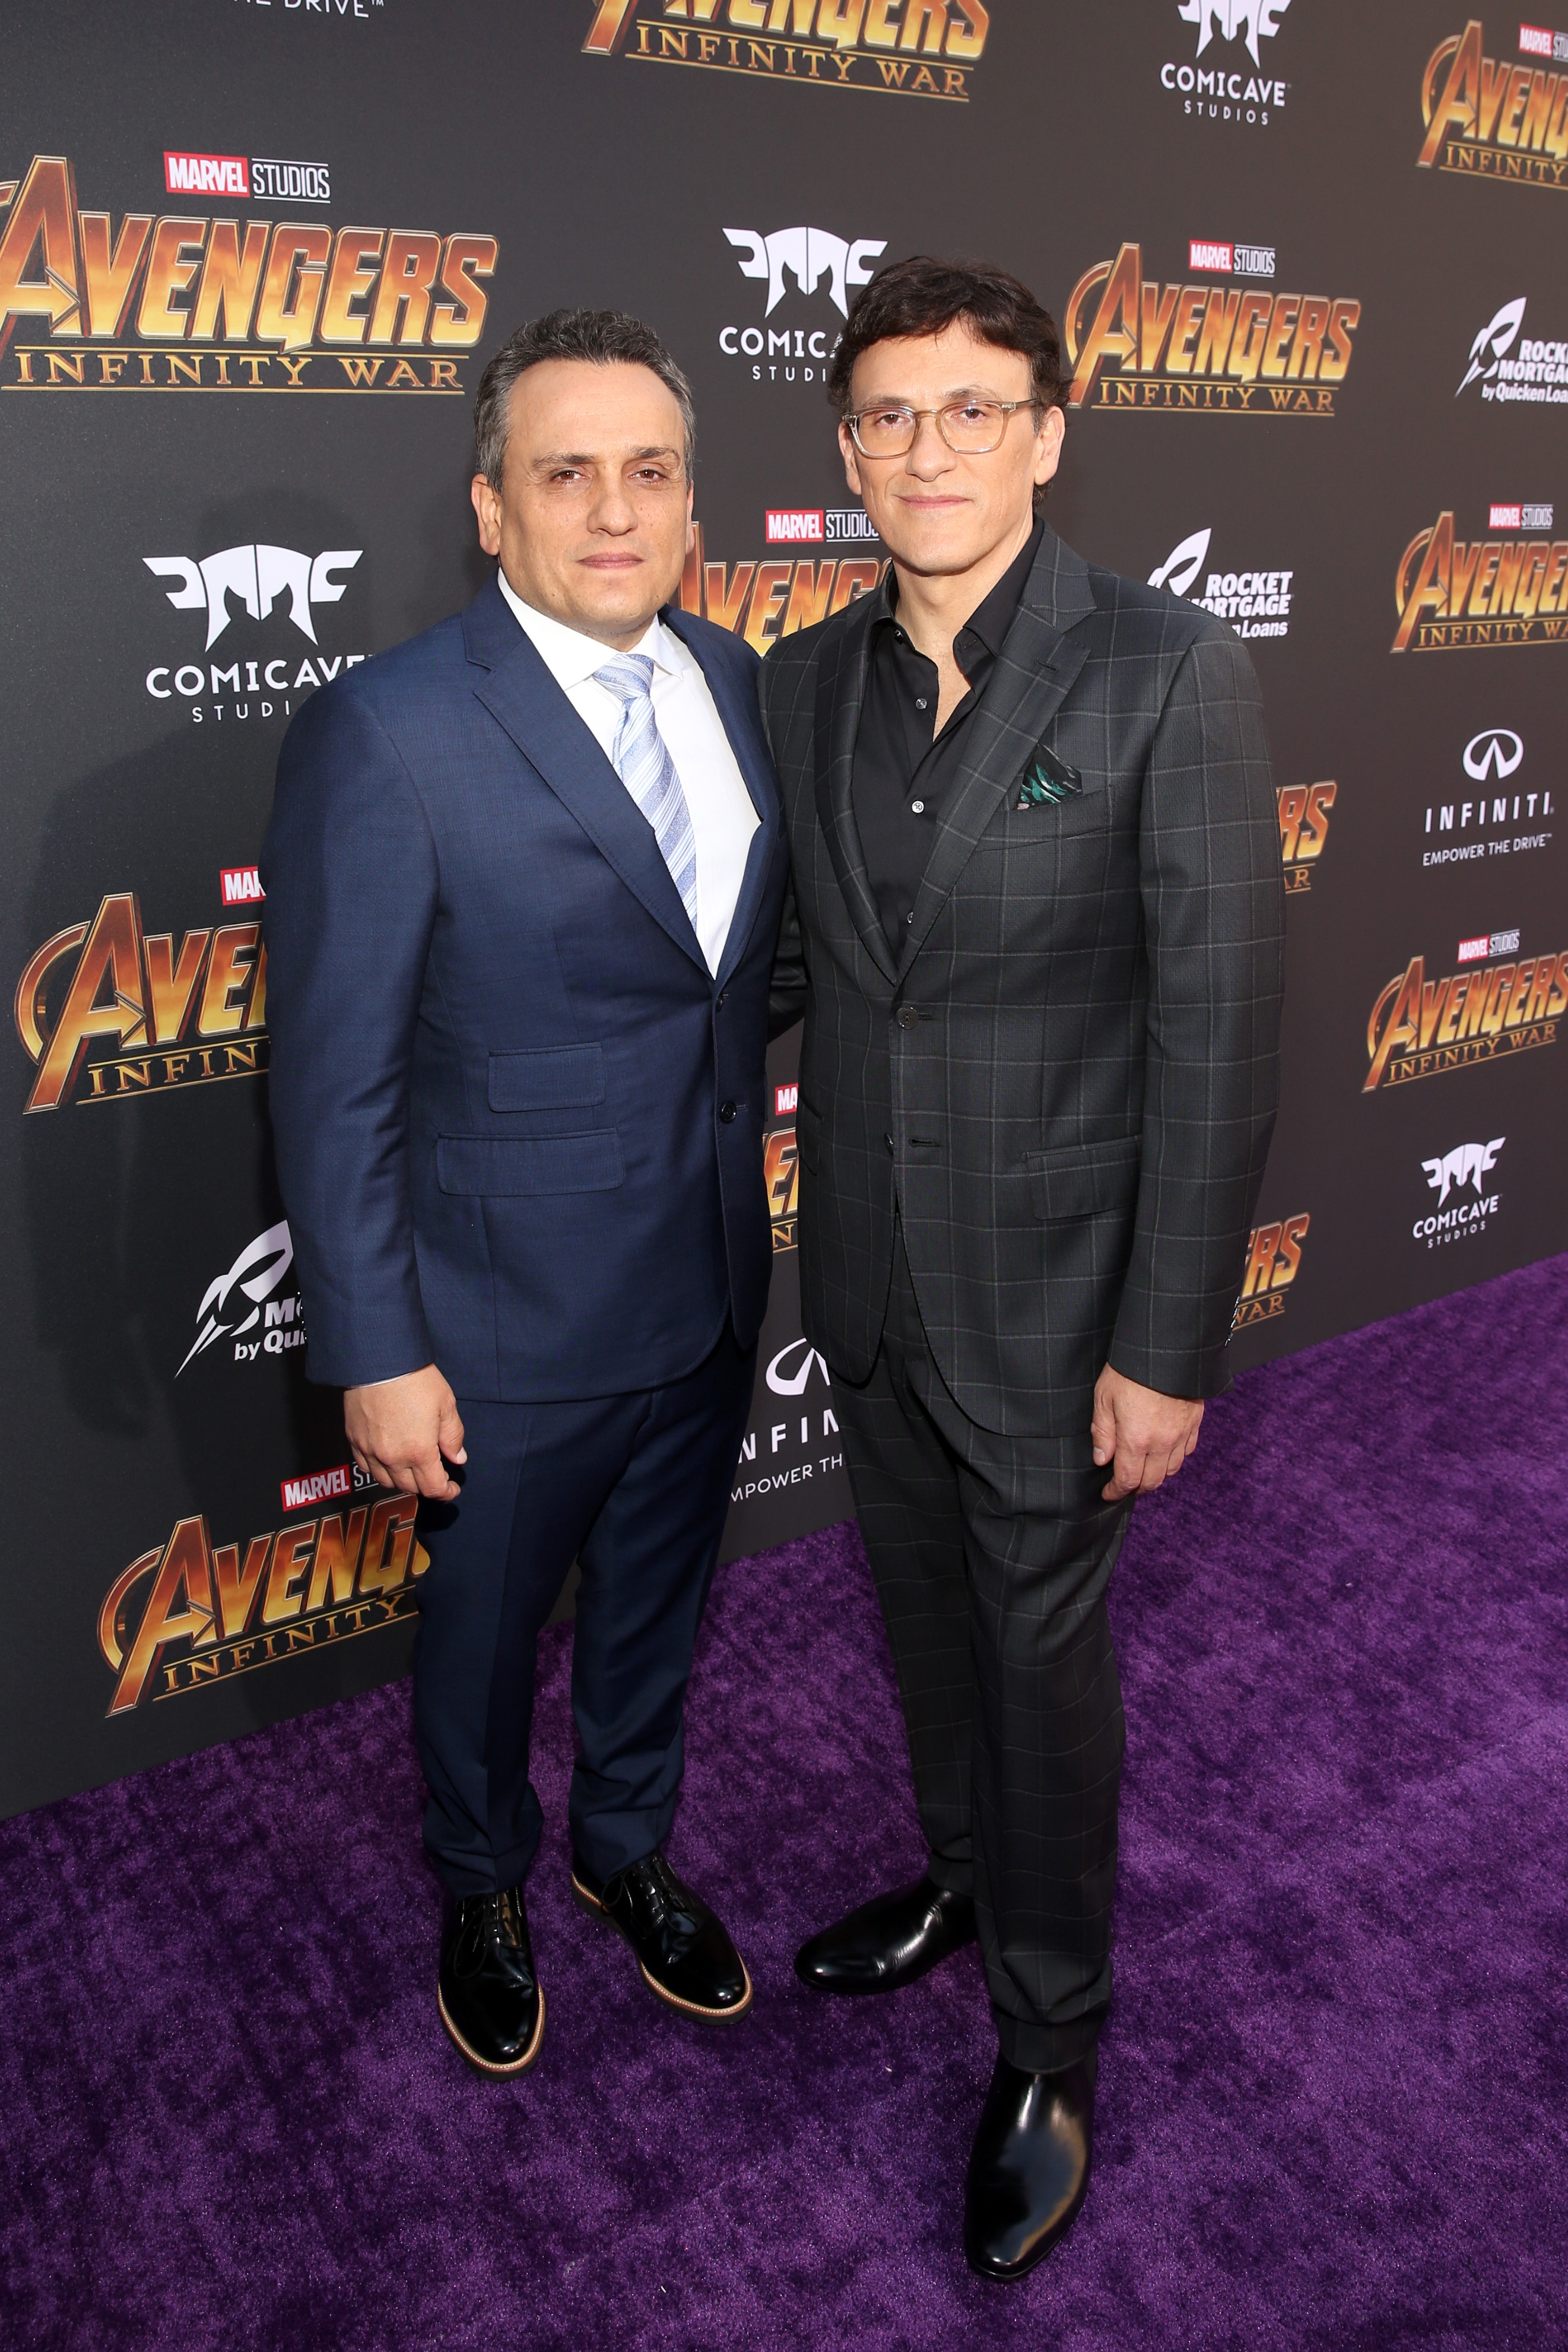 Directors Joe Russo (L) and Anthony Russo attend the Los Angeles Global Premiere for Marvel Studios' Avengers: Infinity War on April 23, 2018 in Hollywood, California. (Getty)